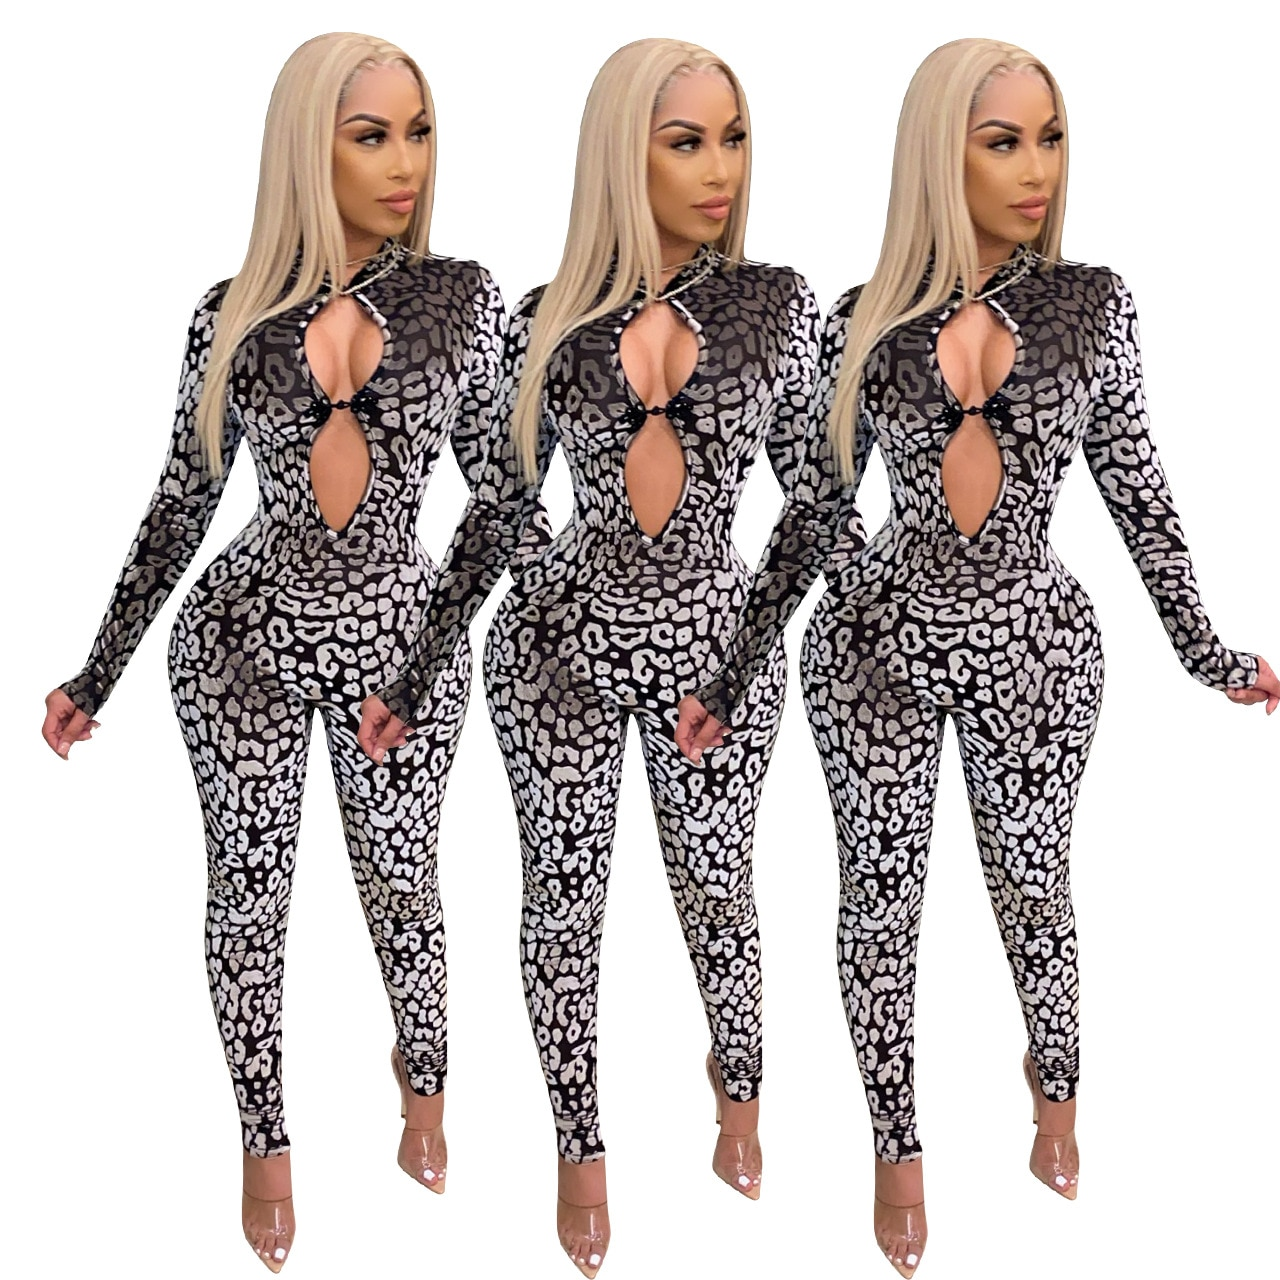 Sexy High Waist Bodycon Stone Stripe Print Hollow Out Jumpsuits Women Winter Clothes Fashion Casual Rompers